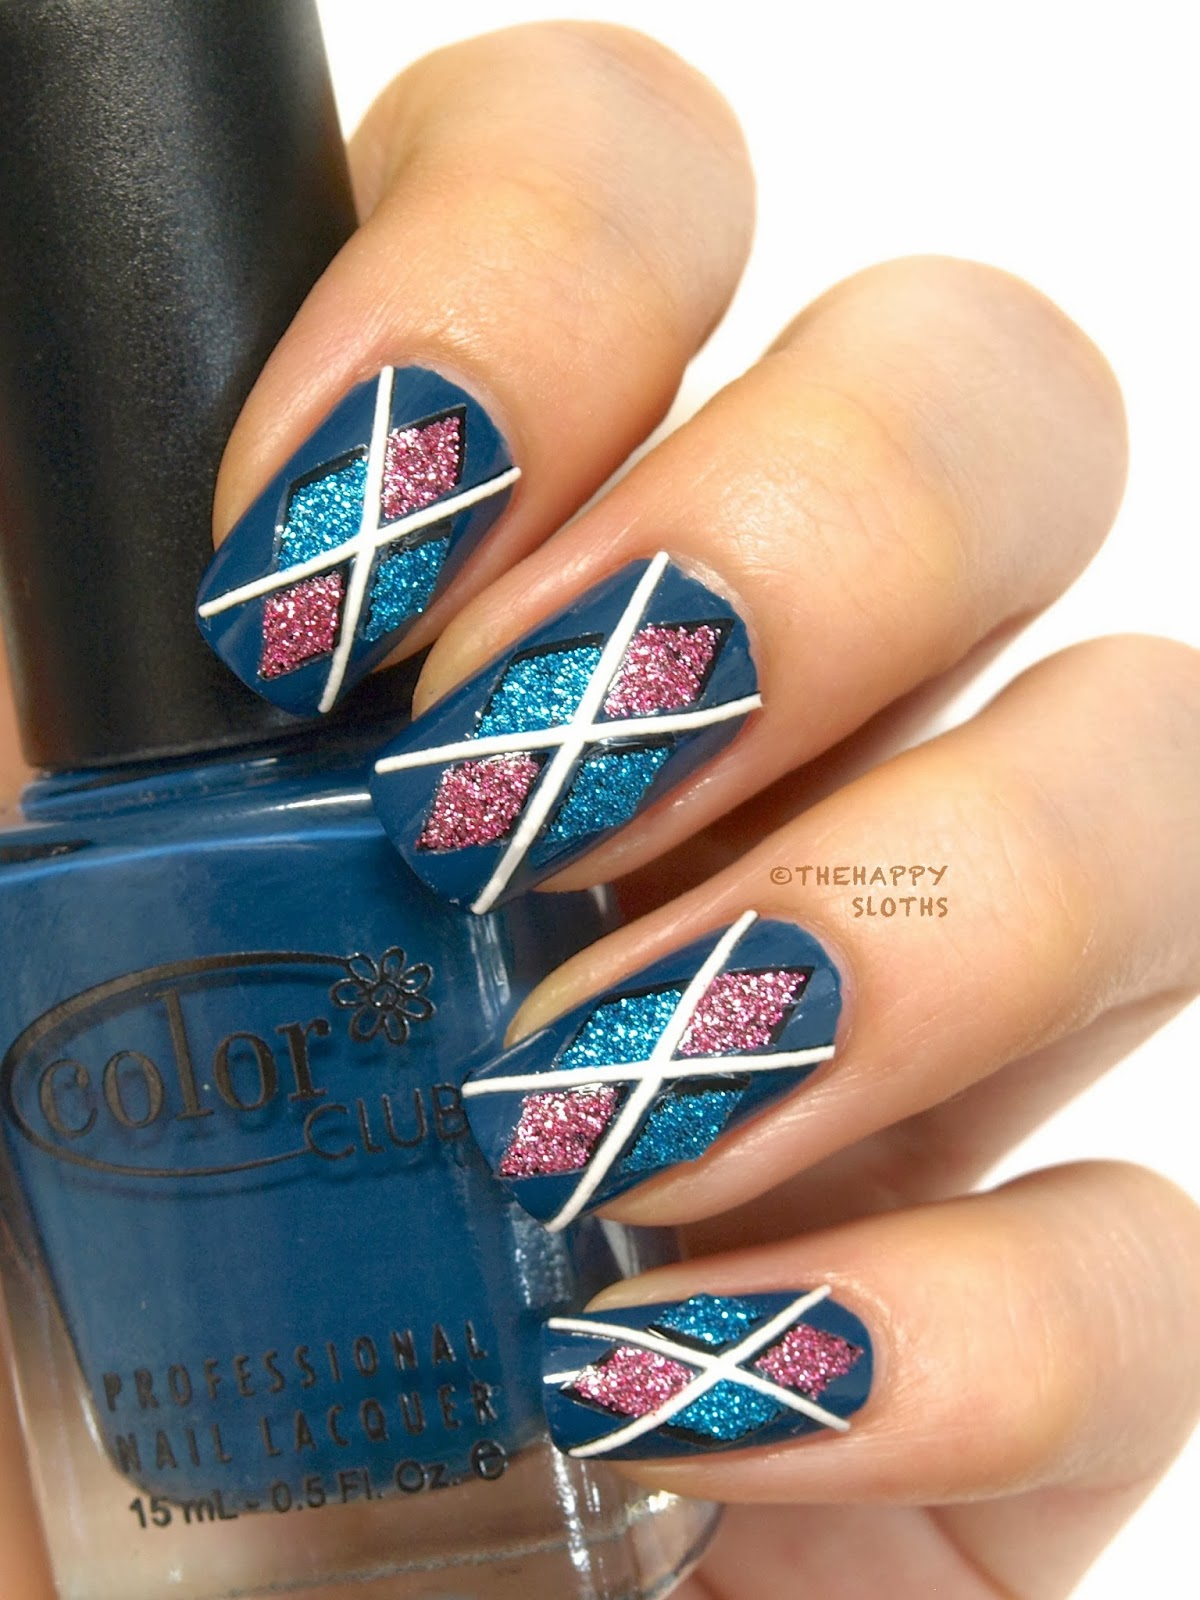 Argyle Nails: Manicure Featuring 3D Design Nail Stickers - Argyle Nails: Manicure Featuring 3D Design Nail Stickers The Happy